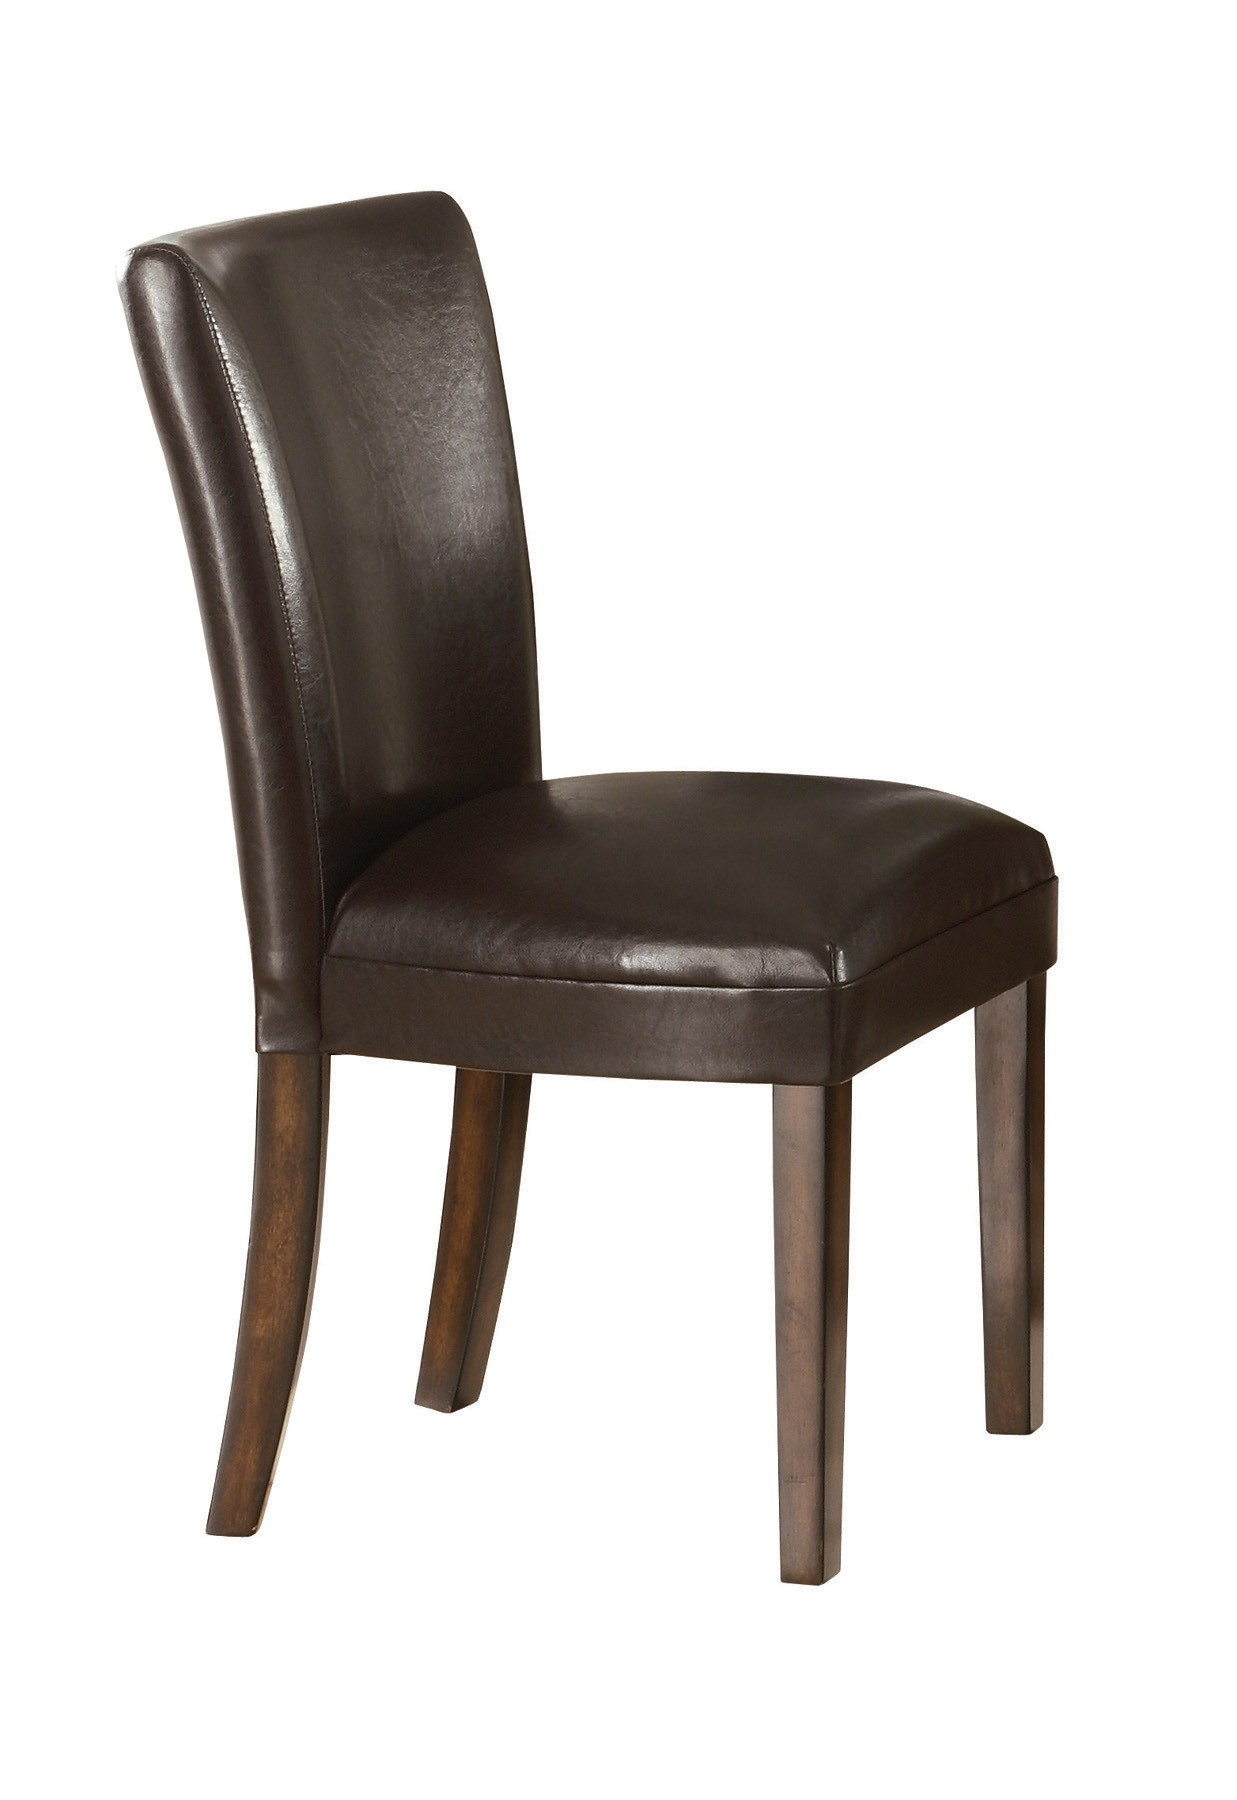 chocolate leather dining chairs fiddle back antique coaster upholstered durable brown faux parsons